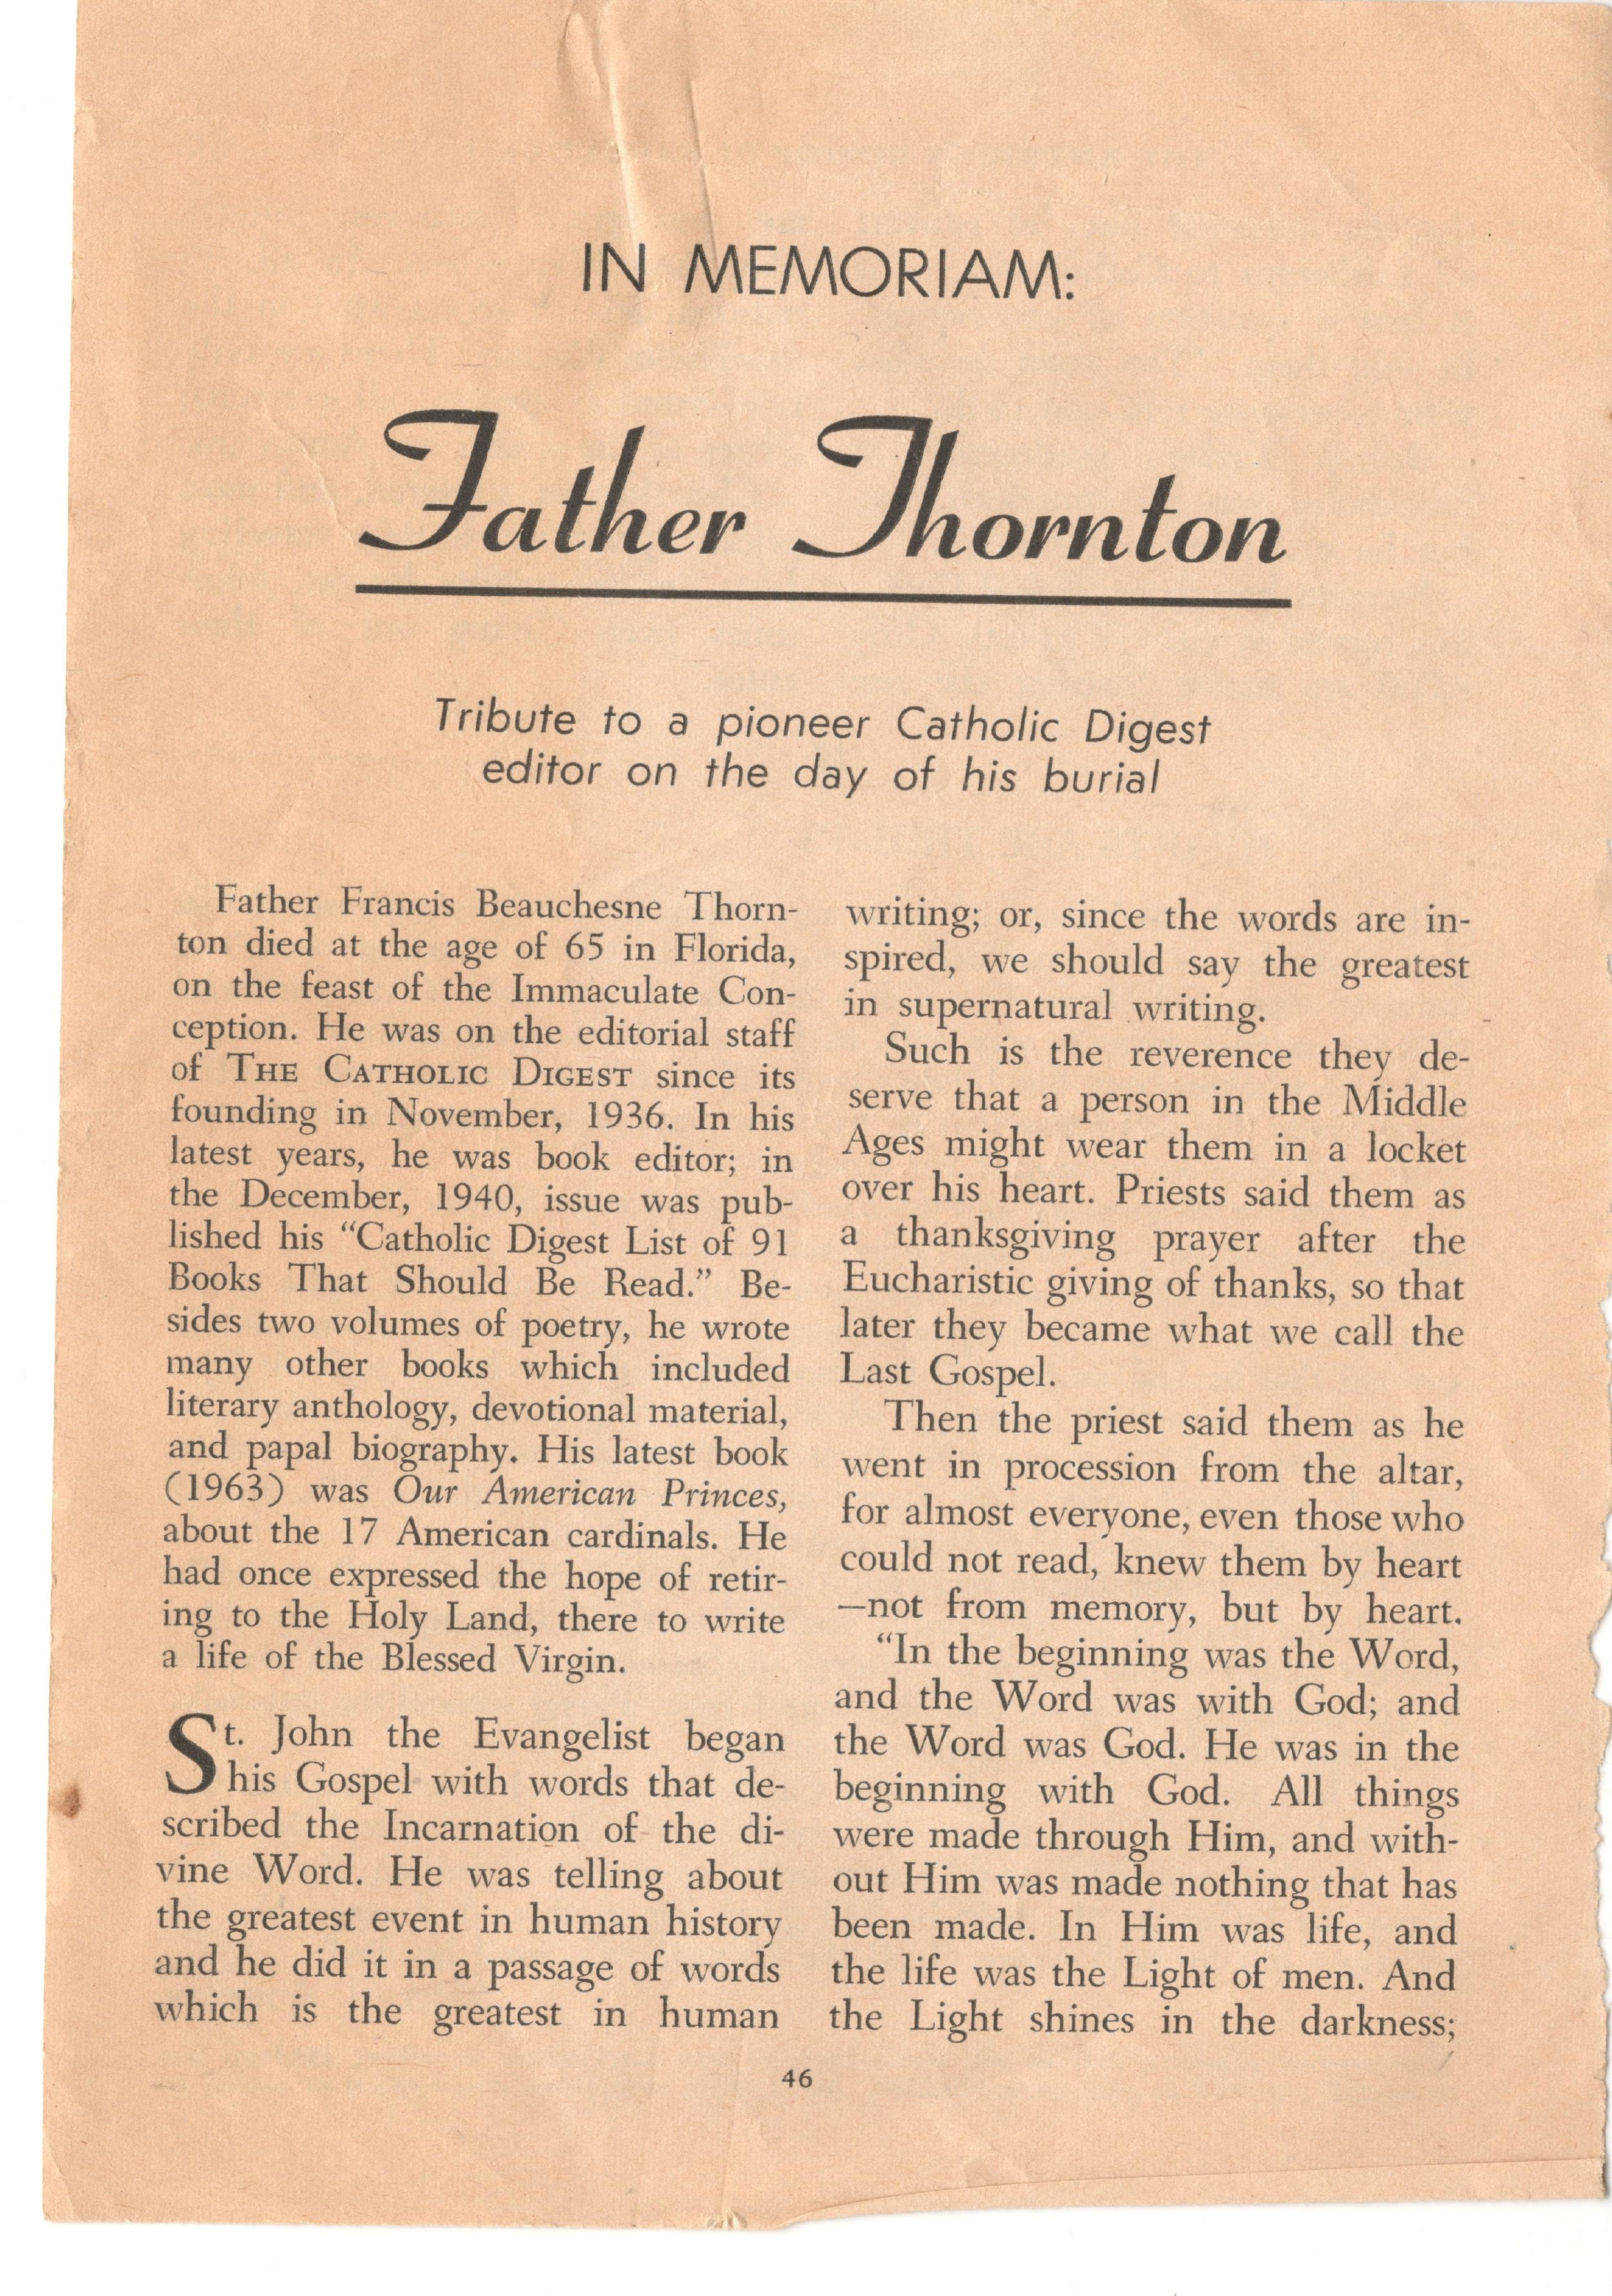 A tribute to Francis Thornton published in the Catholic Digest.